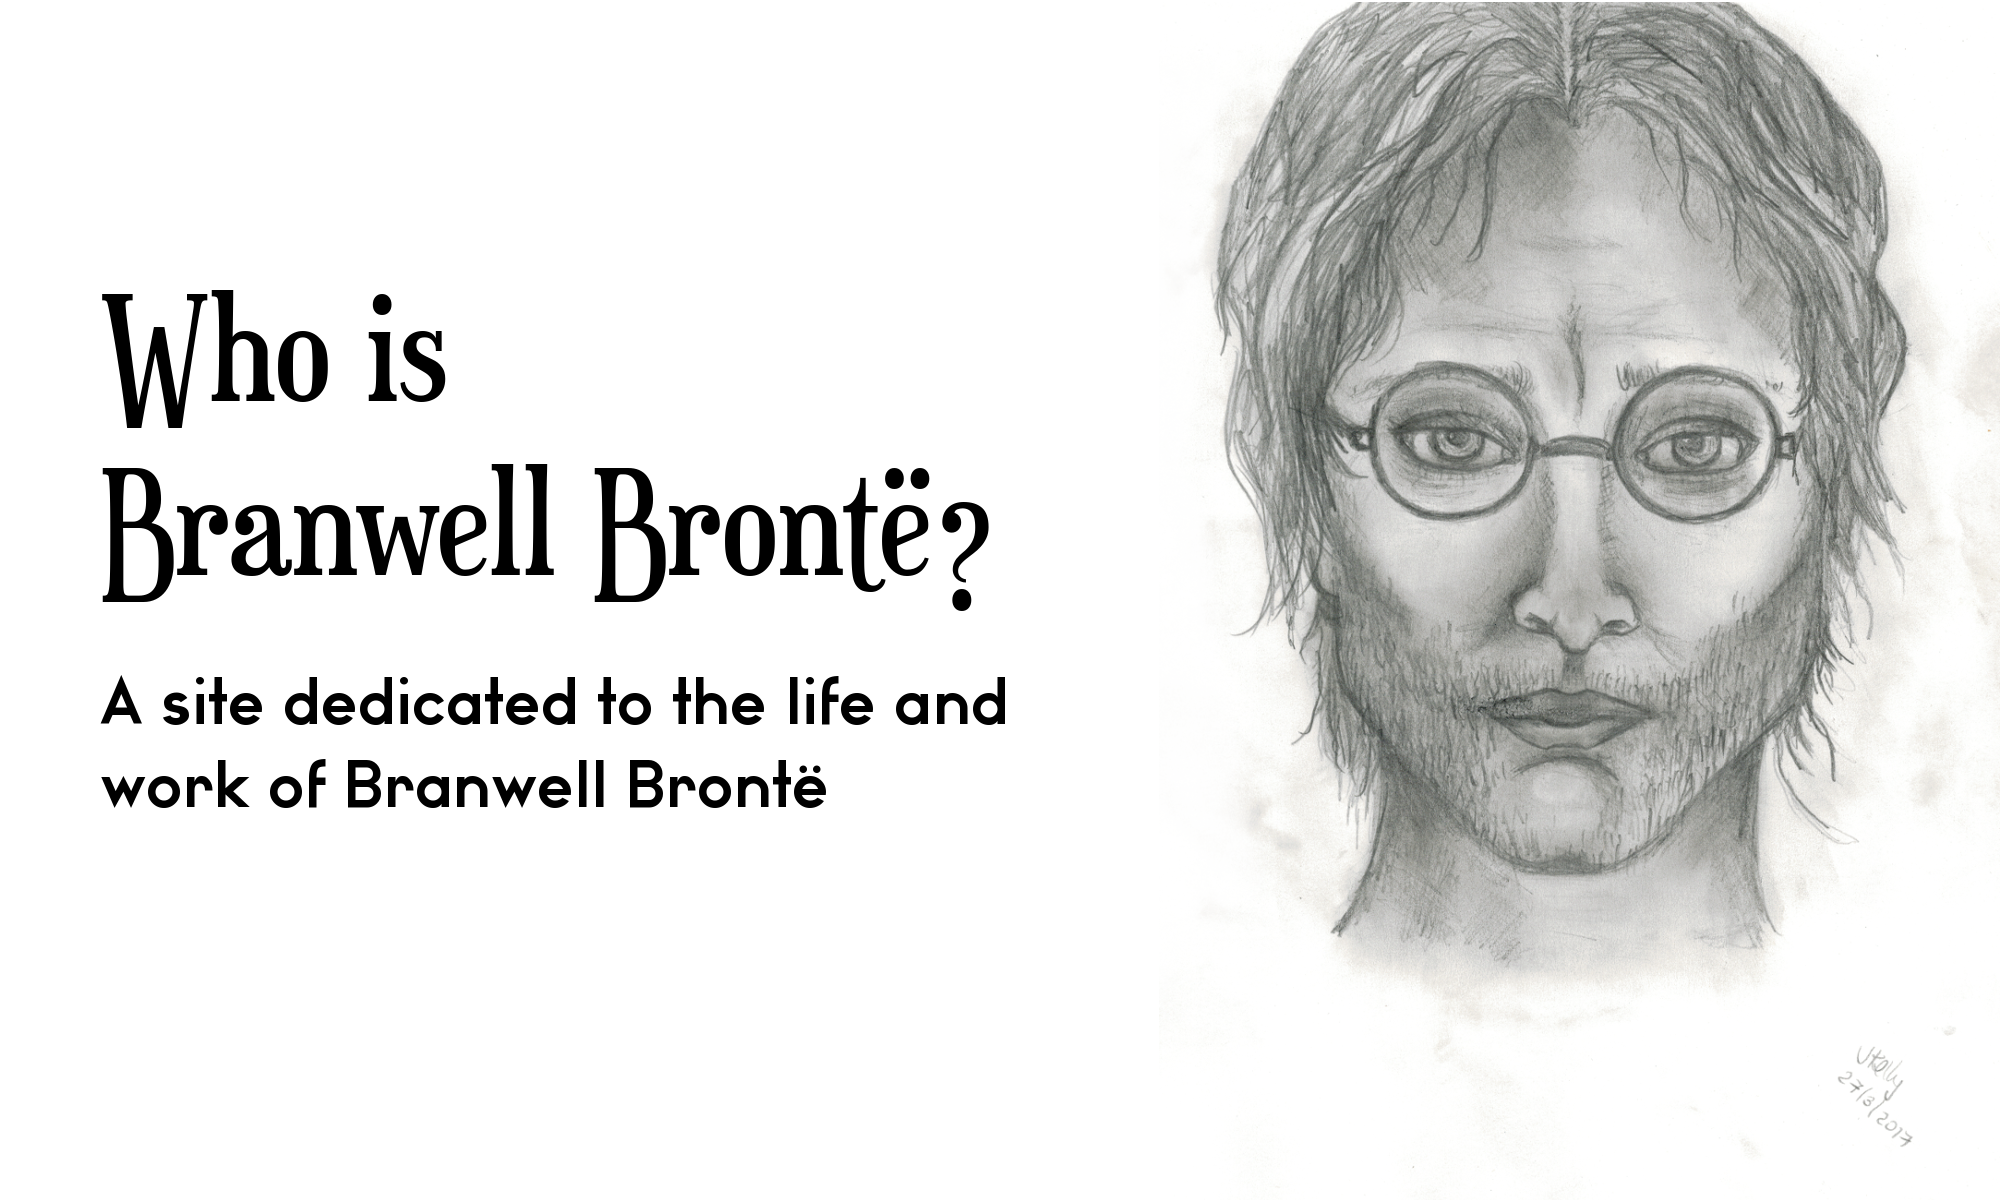 Who is Branwell Brontë?